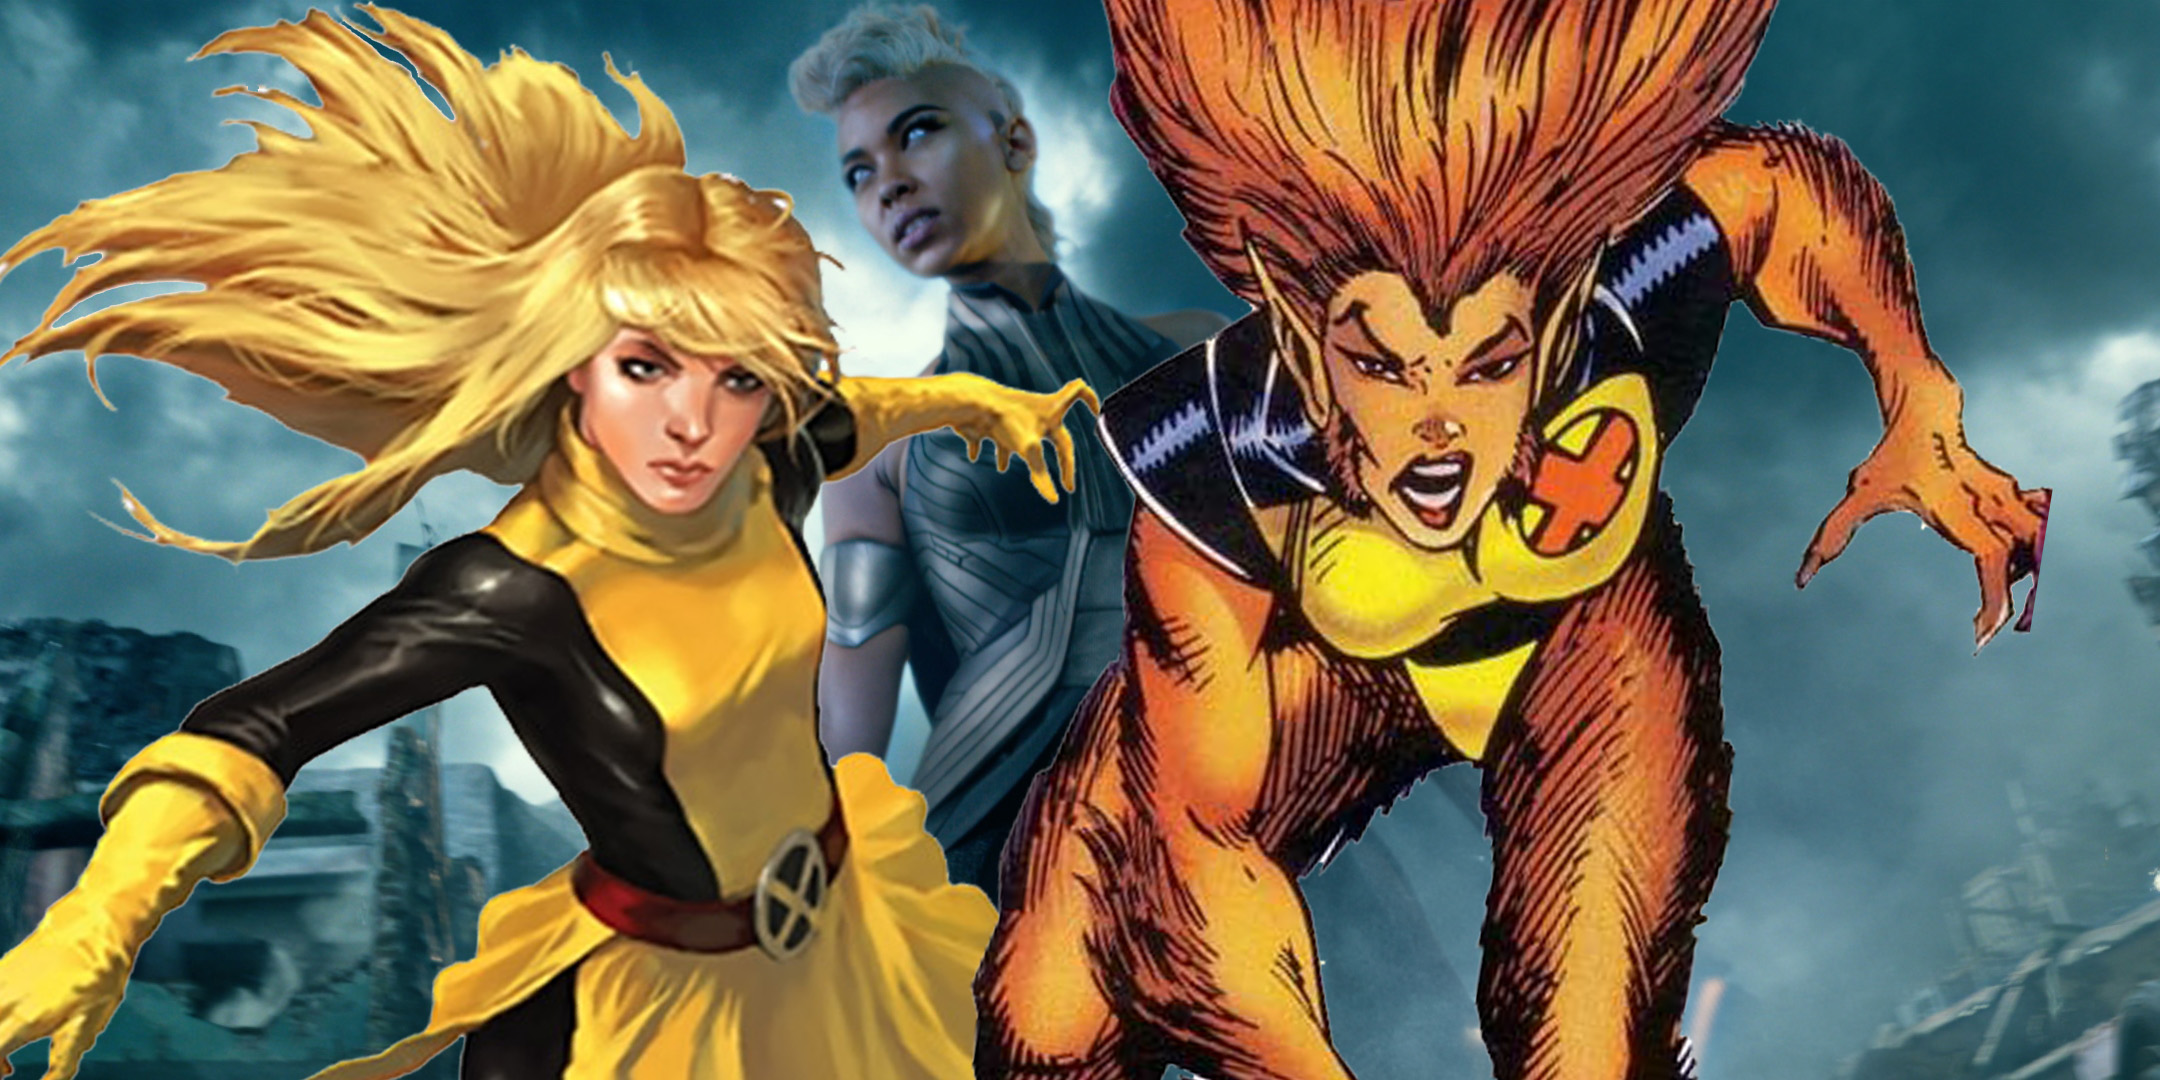 A new report claims that Josh Boone's New Mutants cast is coming together and that Maisie Williams, Anya Taylor-Joy and Alexandra Shipp are all set to star.